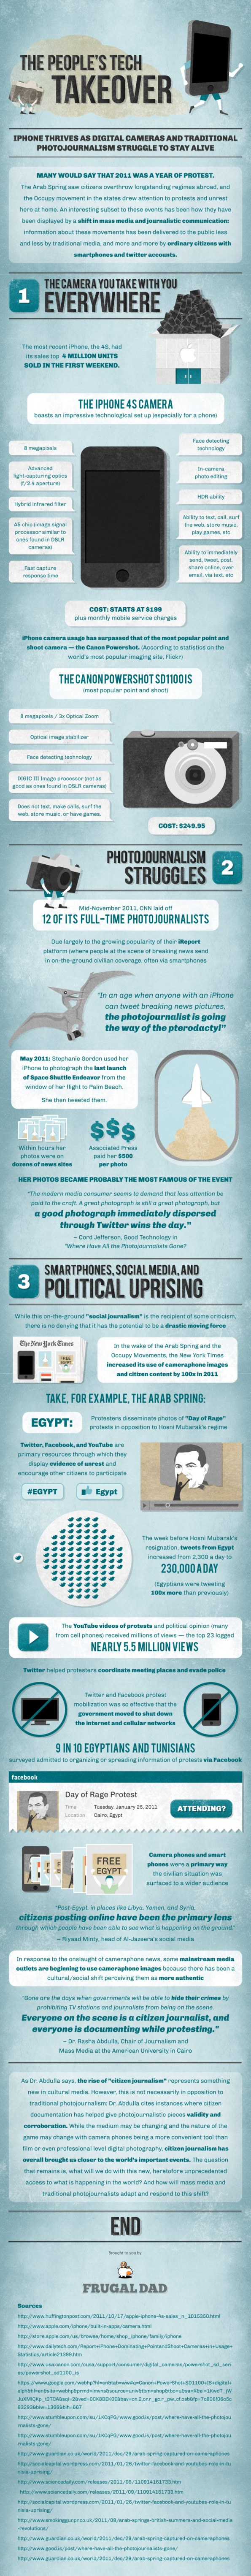 Infographic about mobile phone photojournalism